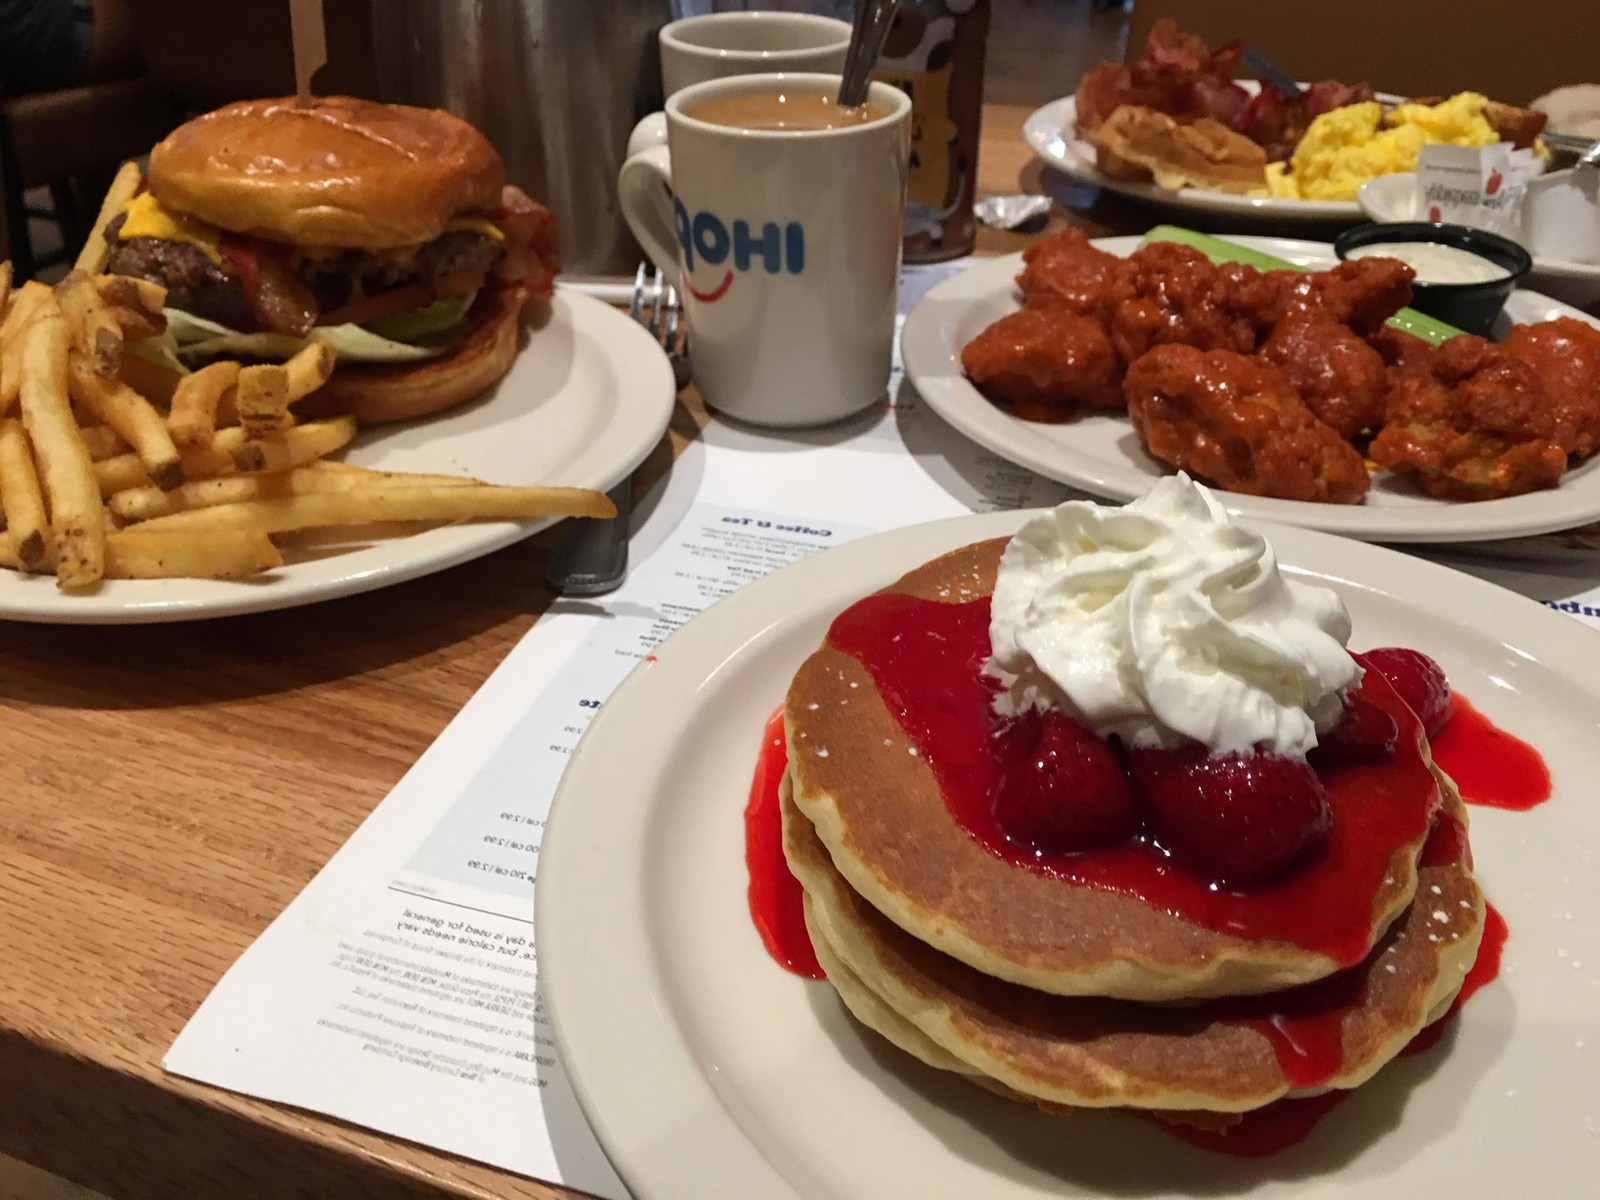 ihop-applebees-beauty.jpg